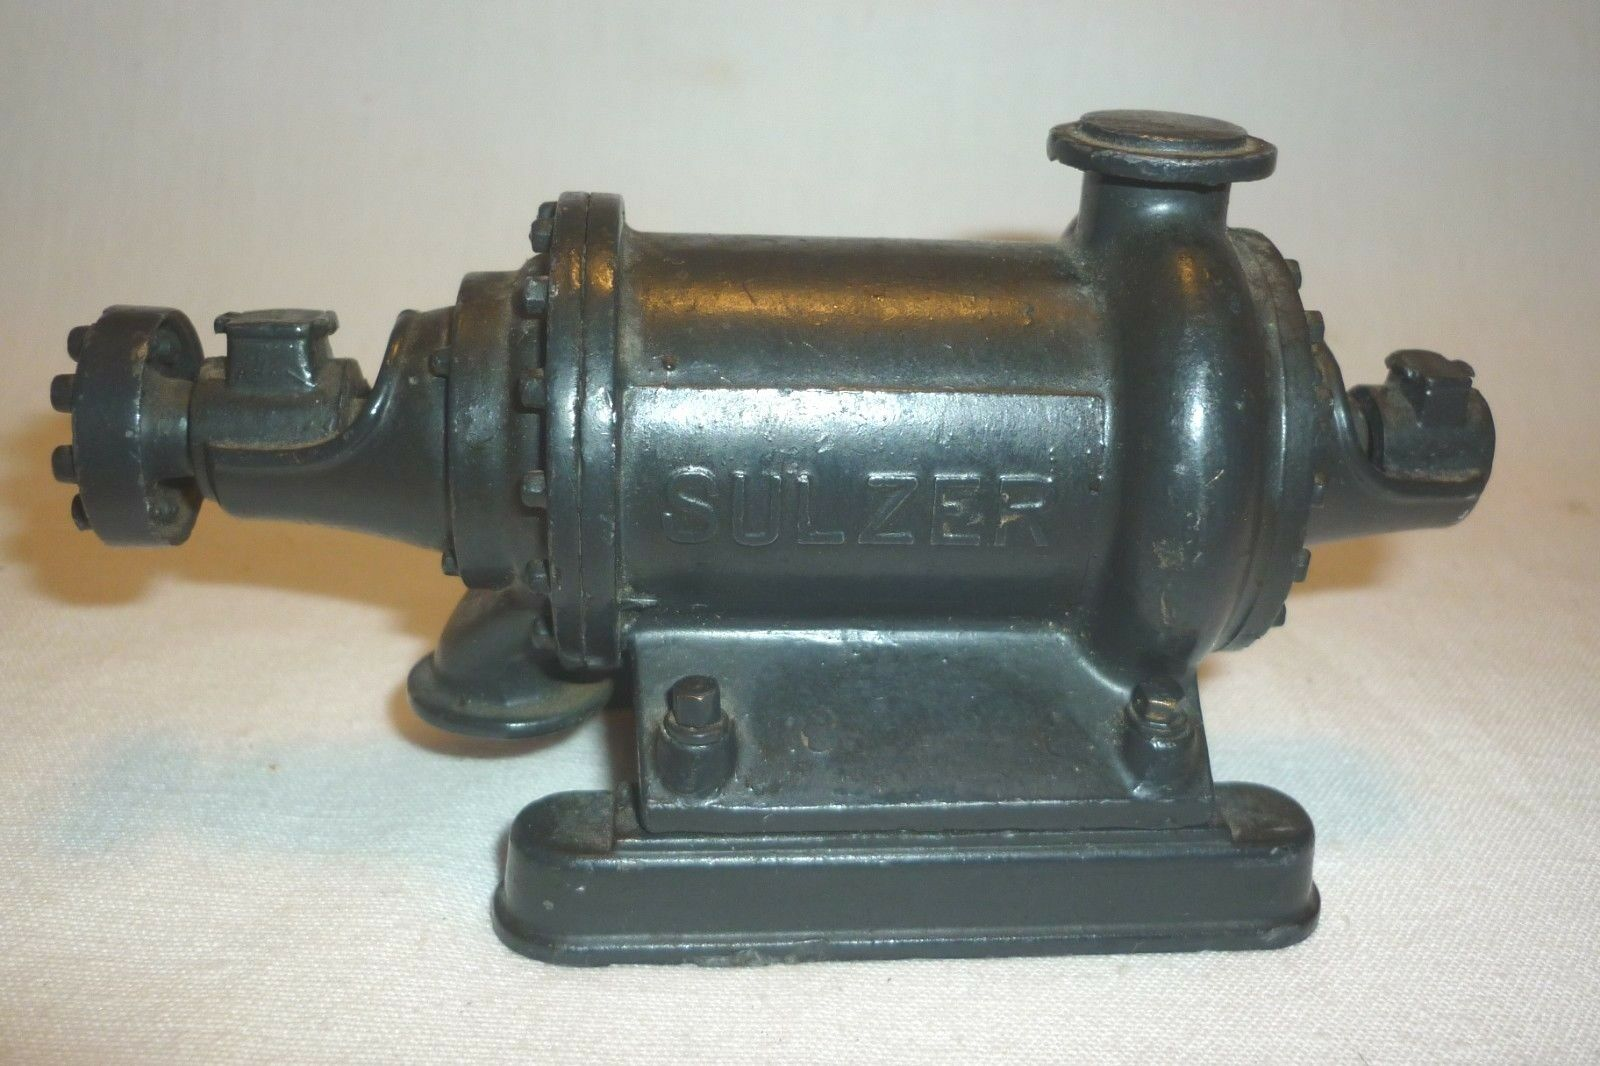 Sulzer Pump Metal Model - Germany - 12 cm (8.DIV-7)